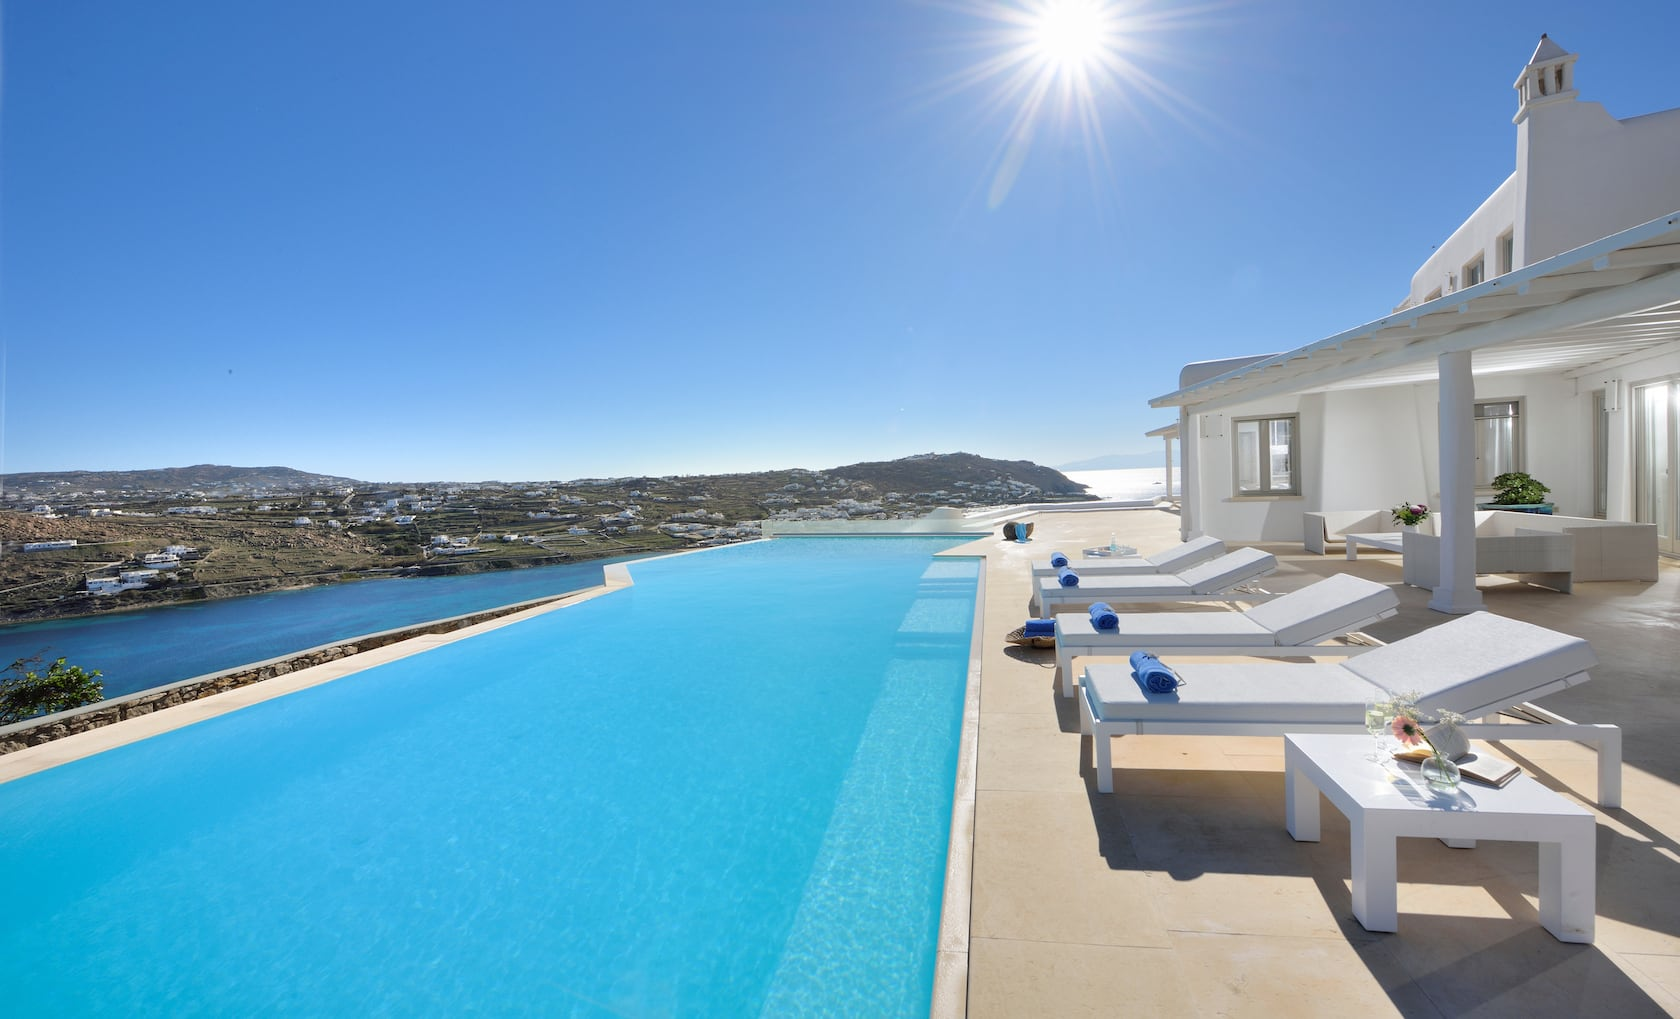 Sun loungers by the swimming pool in Villa Divine overlooking the sea and a village.